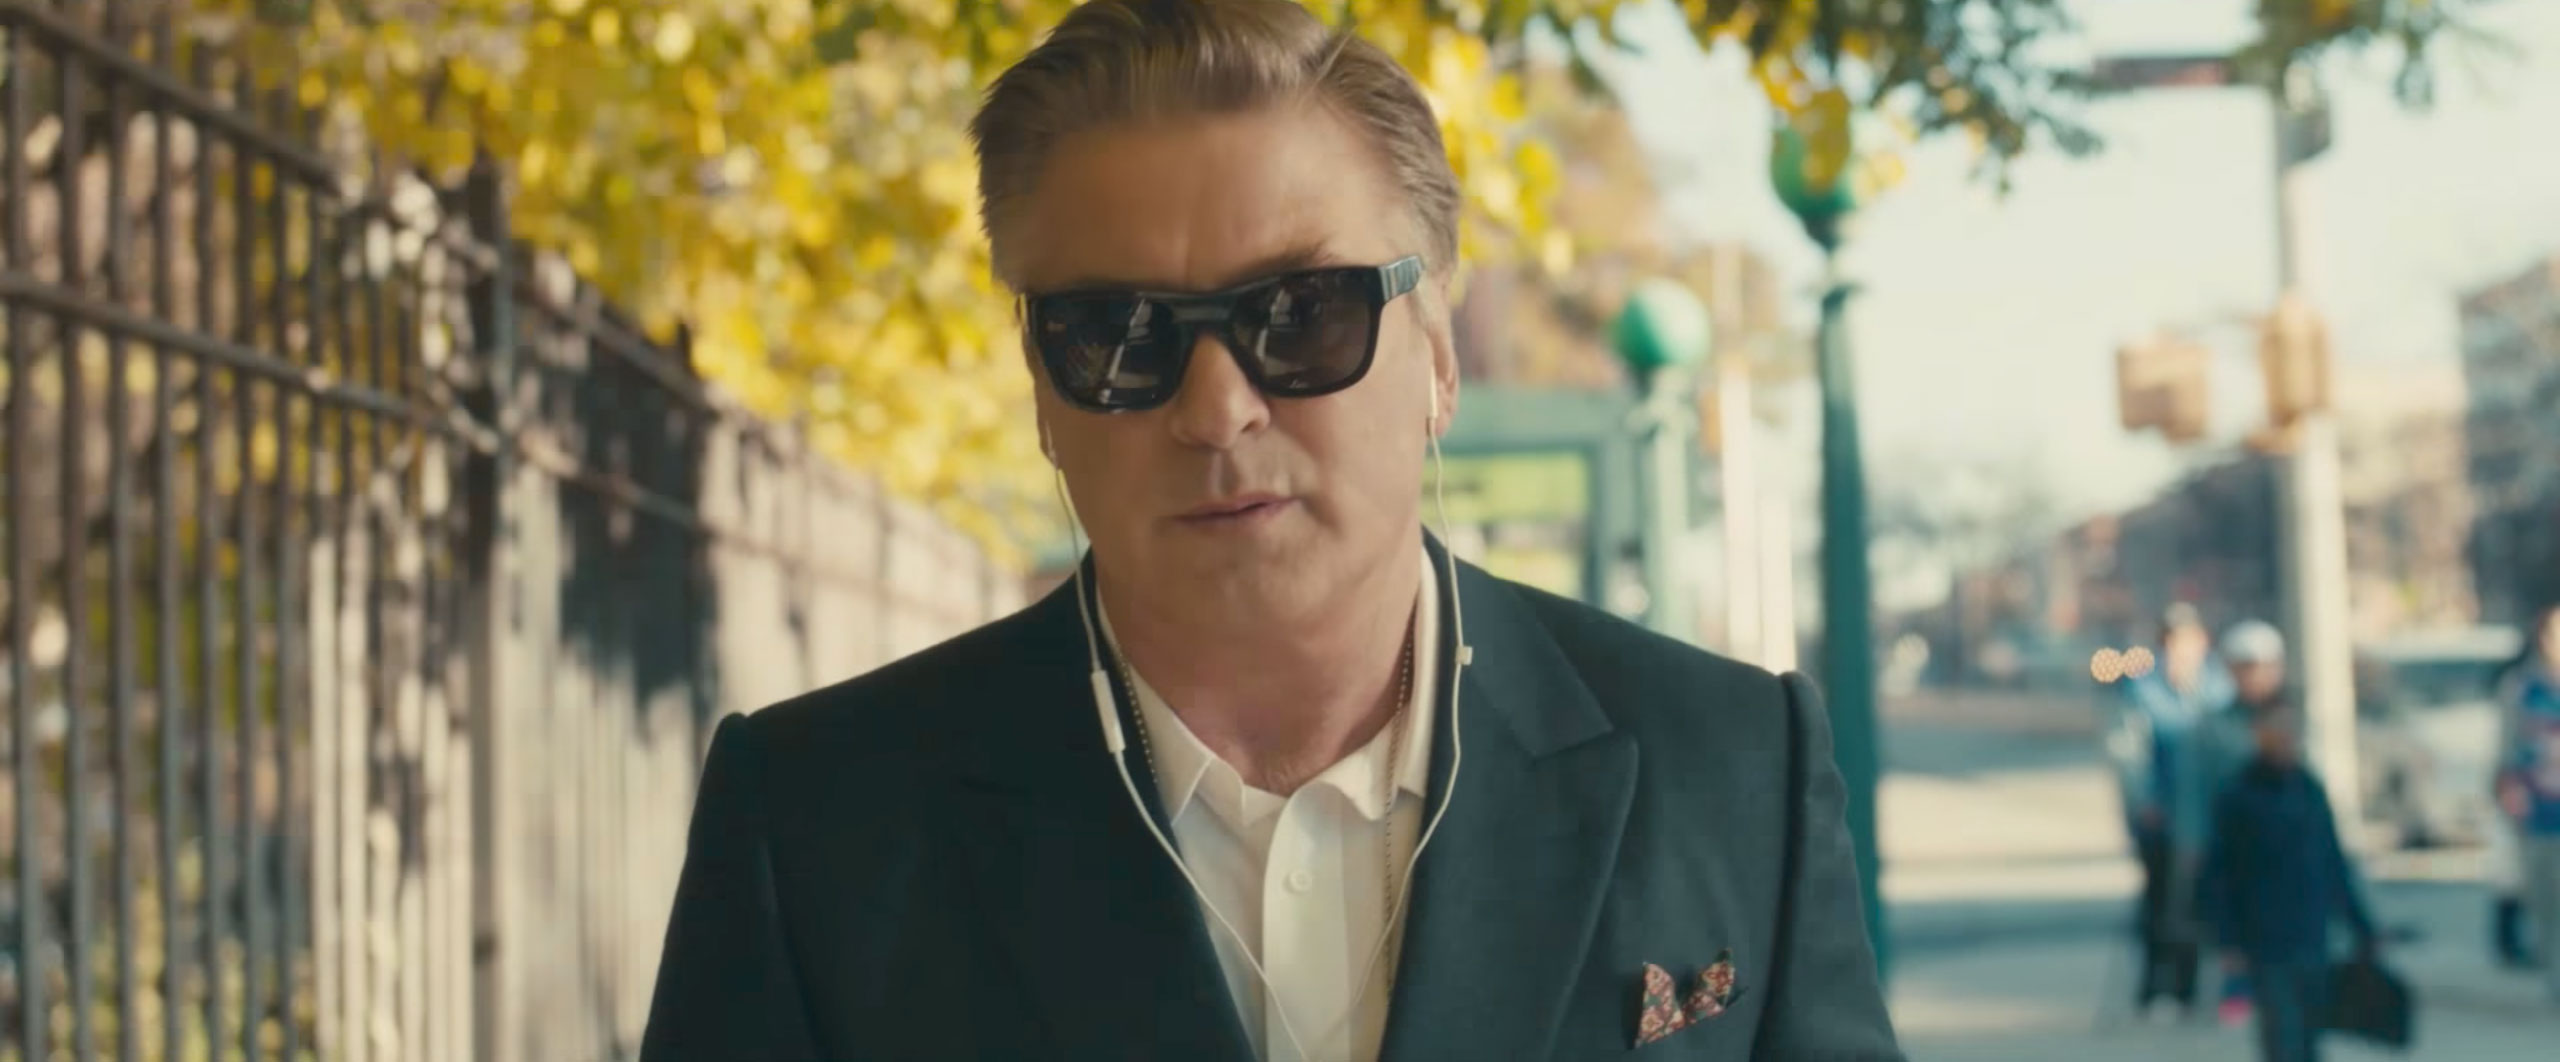 Blind Director Responds to Alec Baldwin Casting Criticism